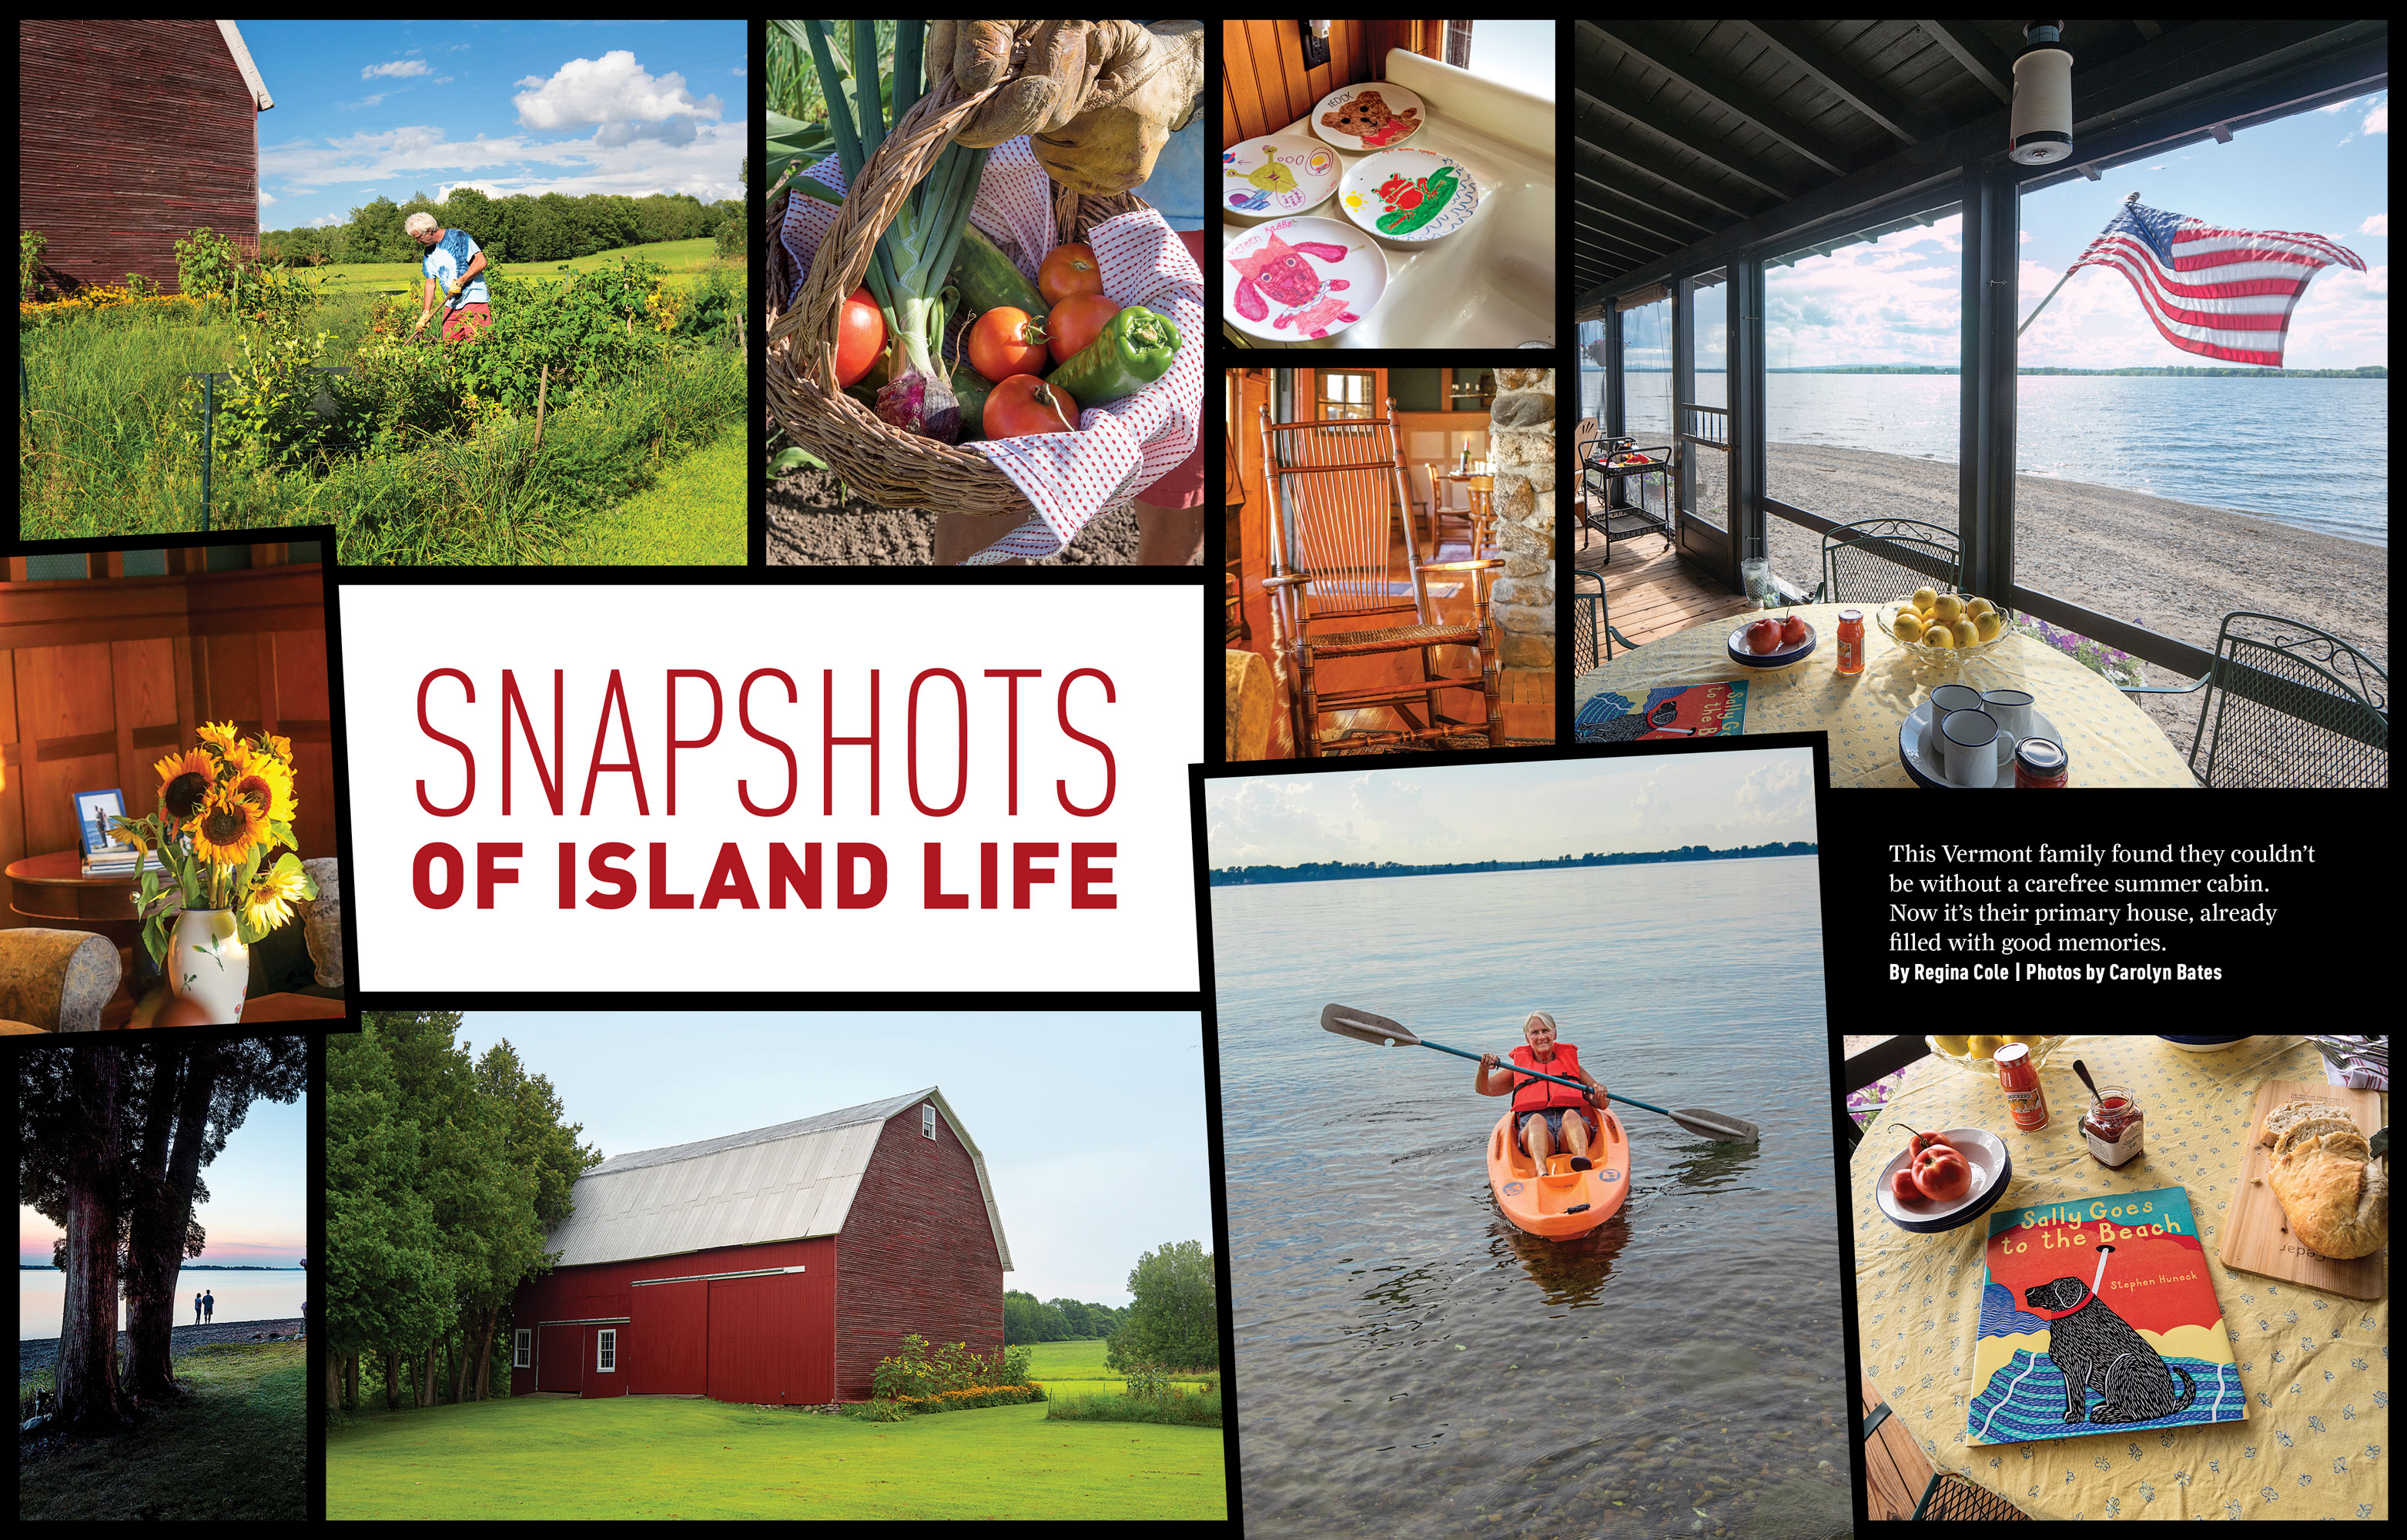 Snapshots of Island Life by Megan Hillman